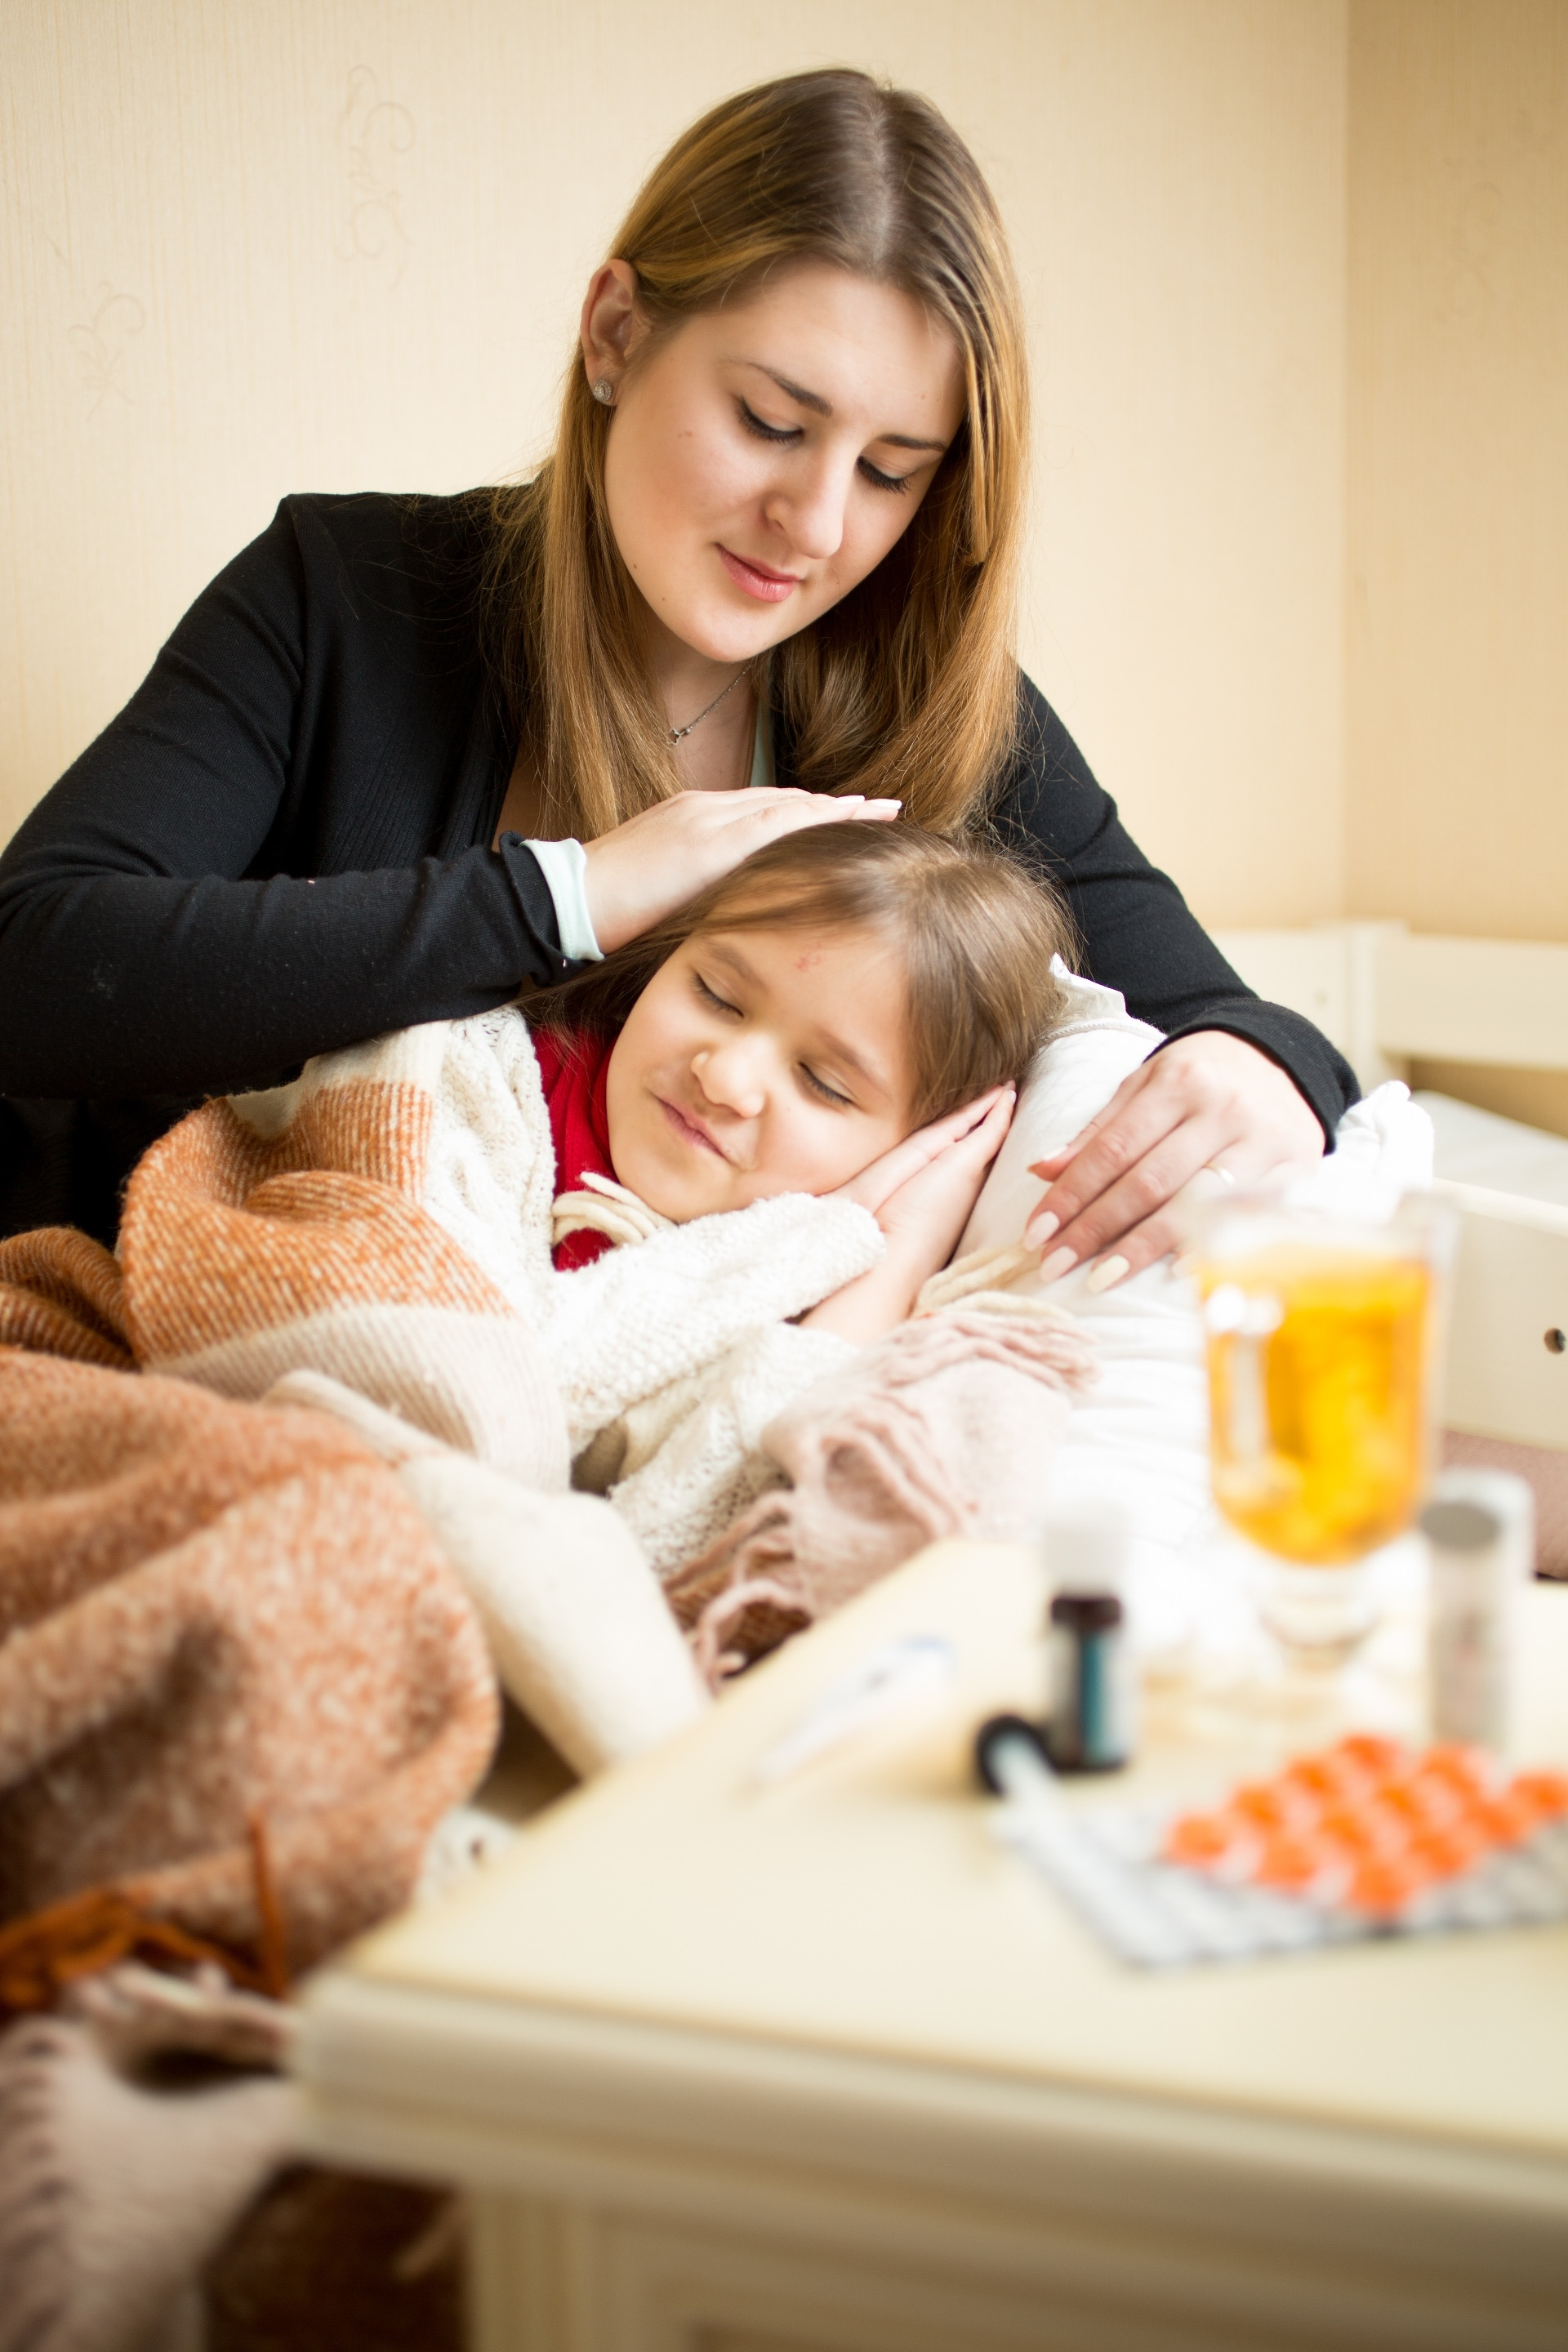 Caring For A Sick Child During Flu Season